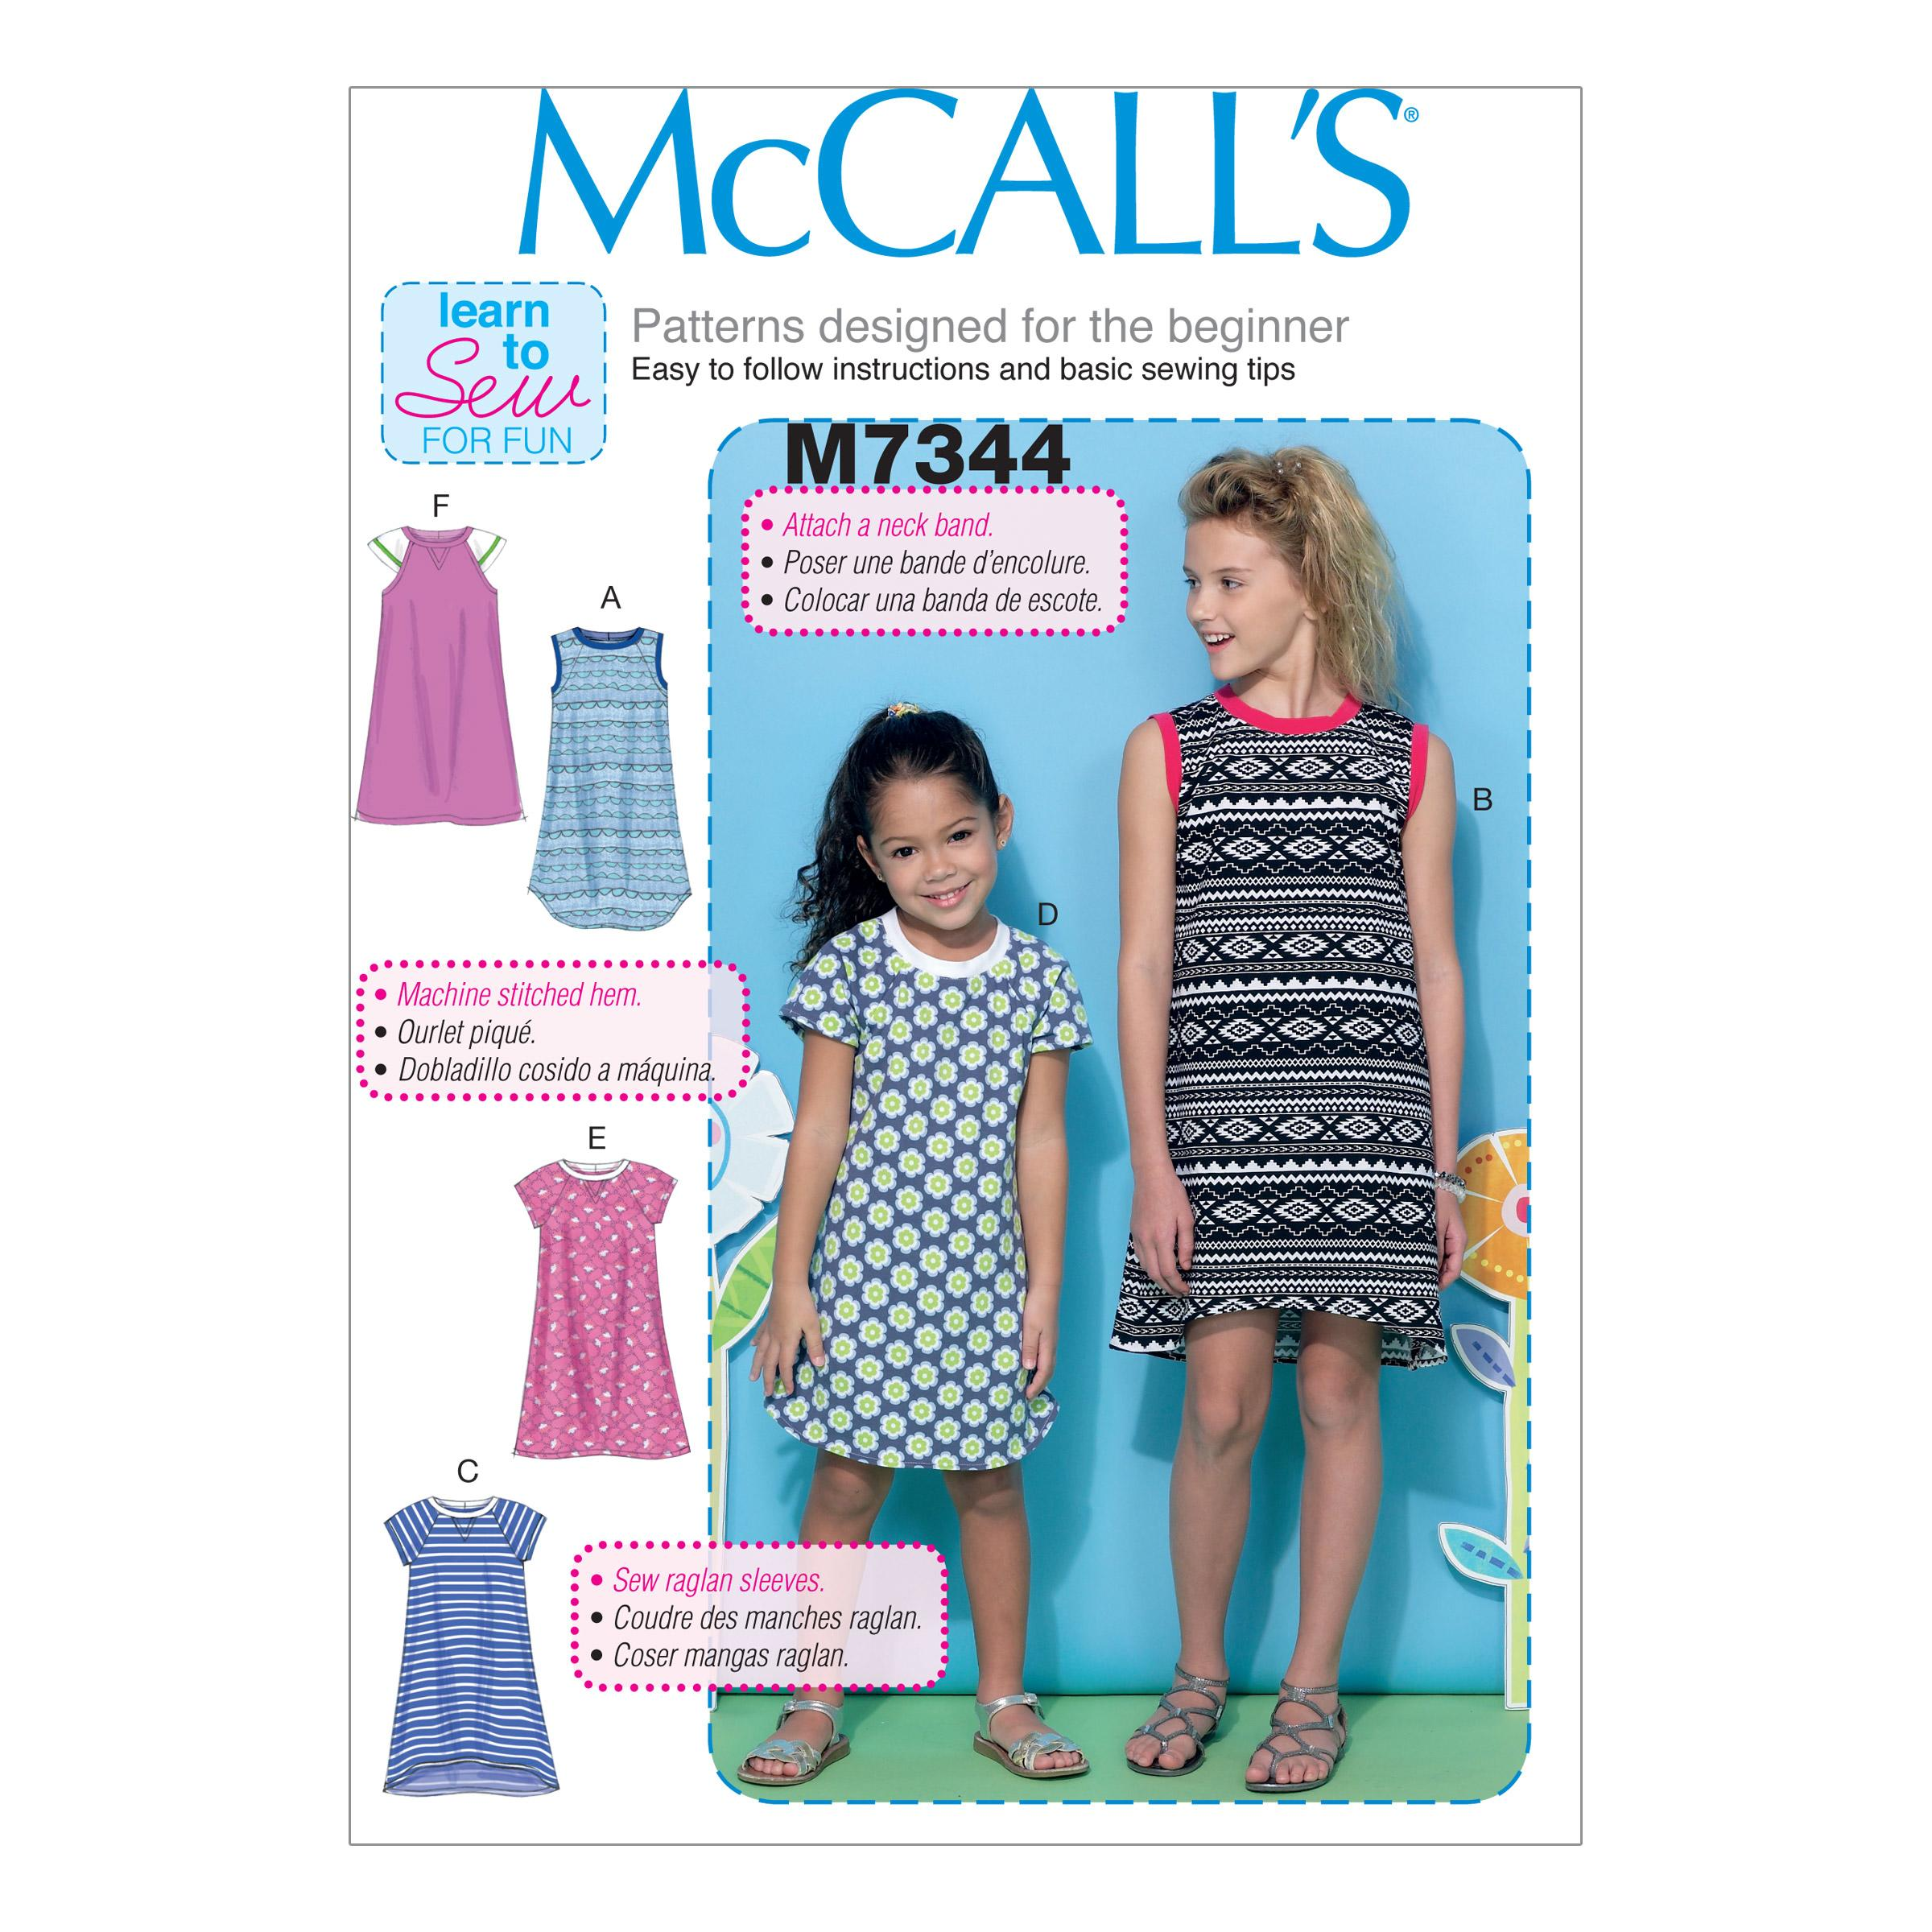 McCalls M7344 Children, Girls/Boys, Learn To Sew for Fun